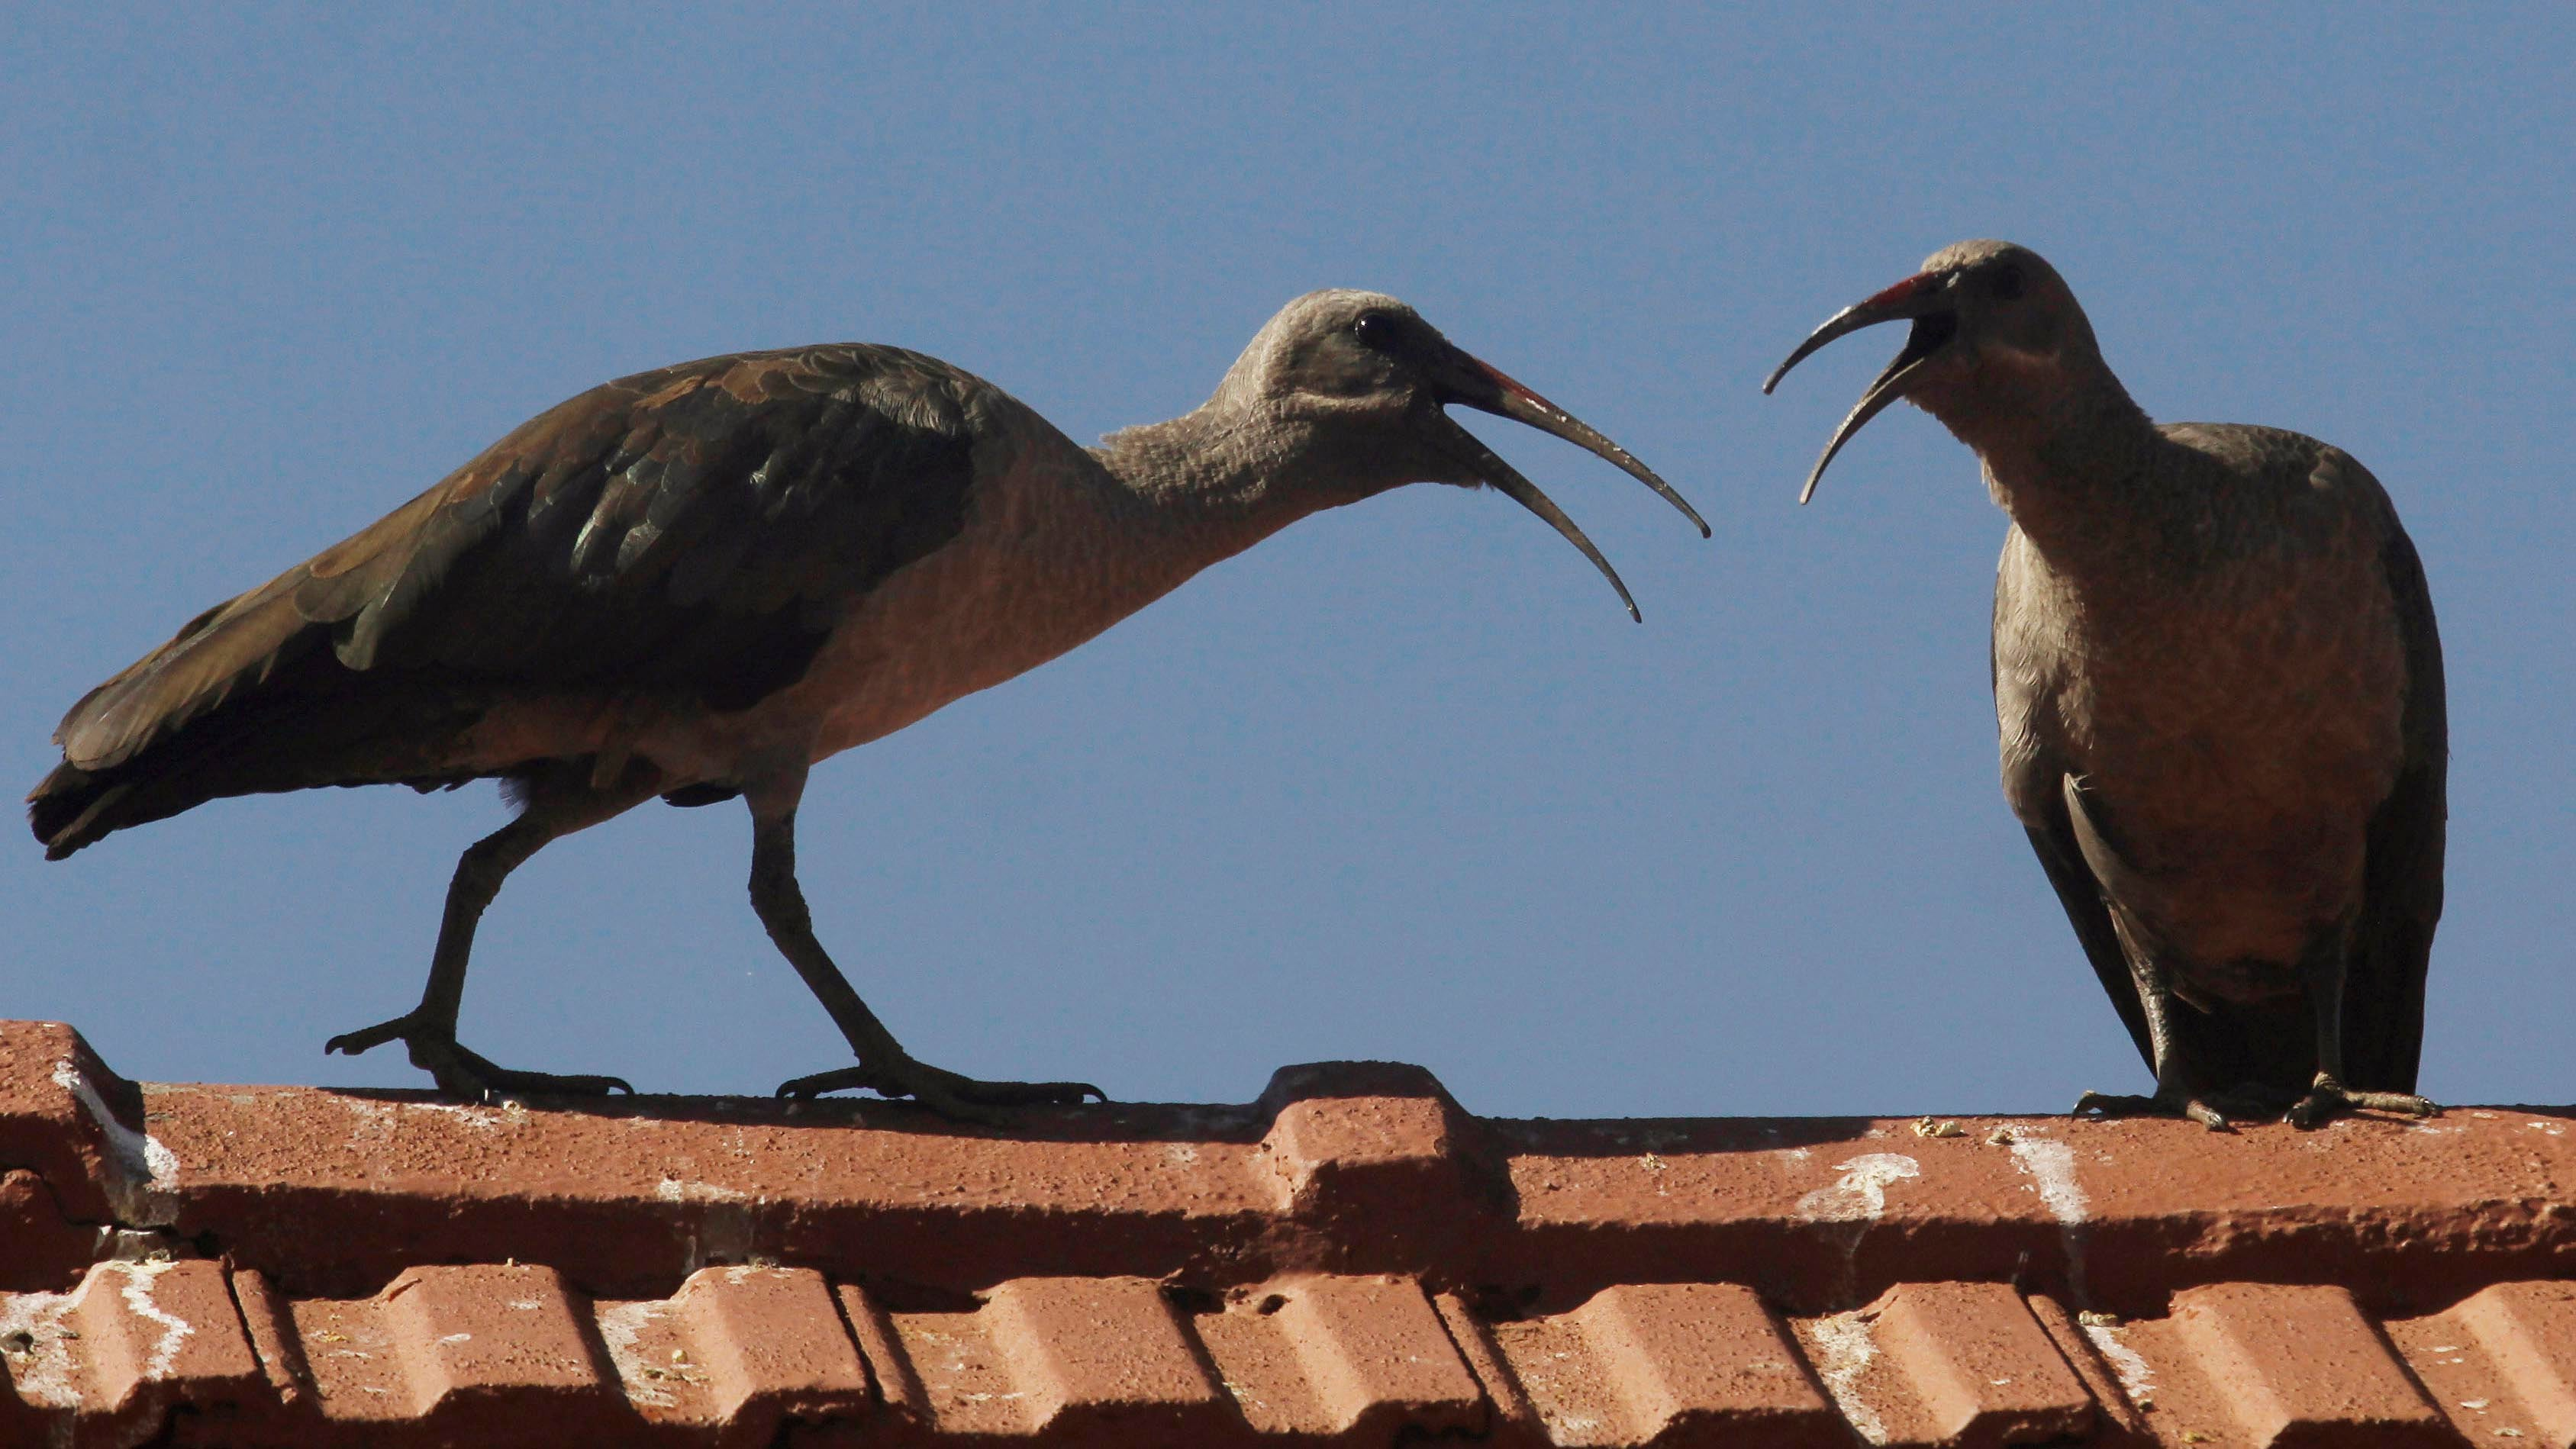 This odd bird the hadeda ibis is taking over south africa the this odd bird the hadeda ibis is taking over south africa the weather channel buycottarizona Choice Image